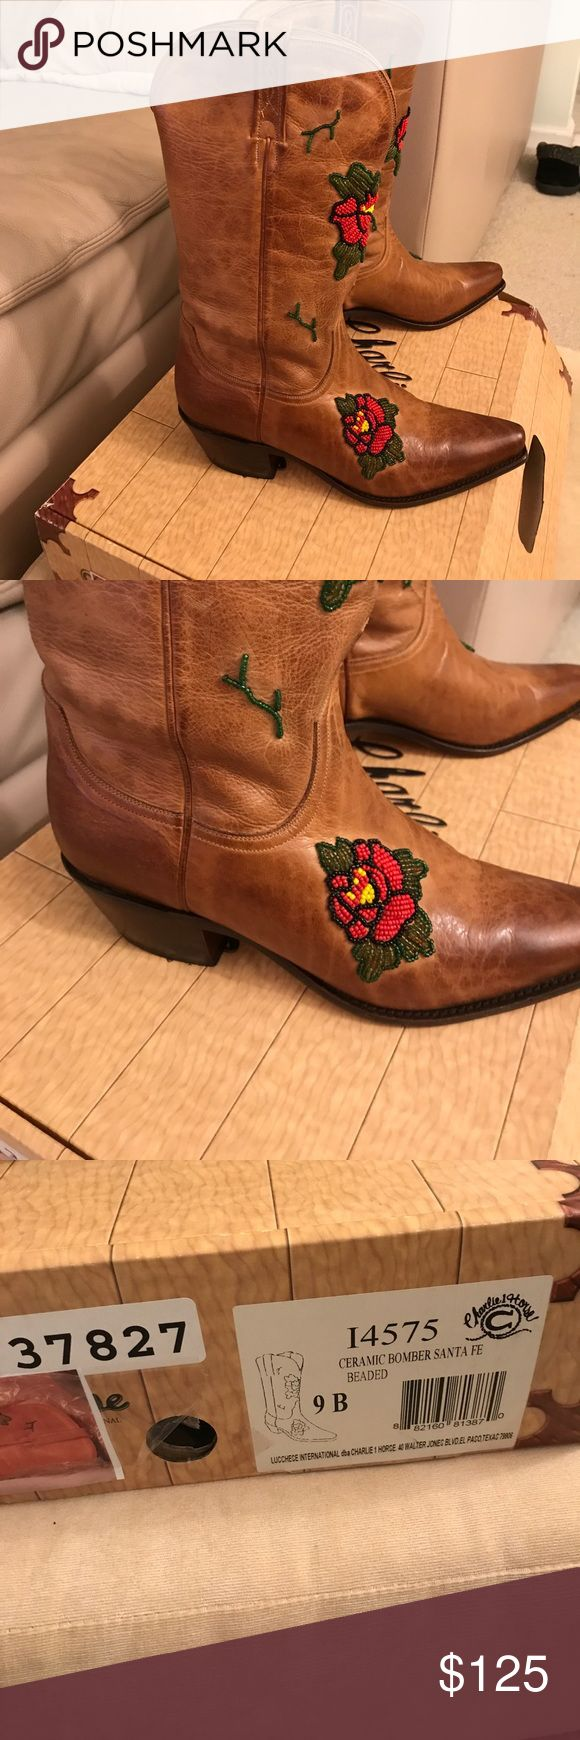 Lucchese Embroidered Cowboy Boots Size 9 Brand New Charlie Horse Embroidered Cowboy Boots with Roses. Size 9-B Made by Lucchese in El Paso Texas Lucchese Shoes Heeled Boots